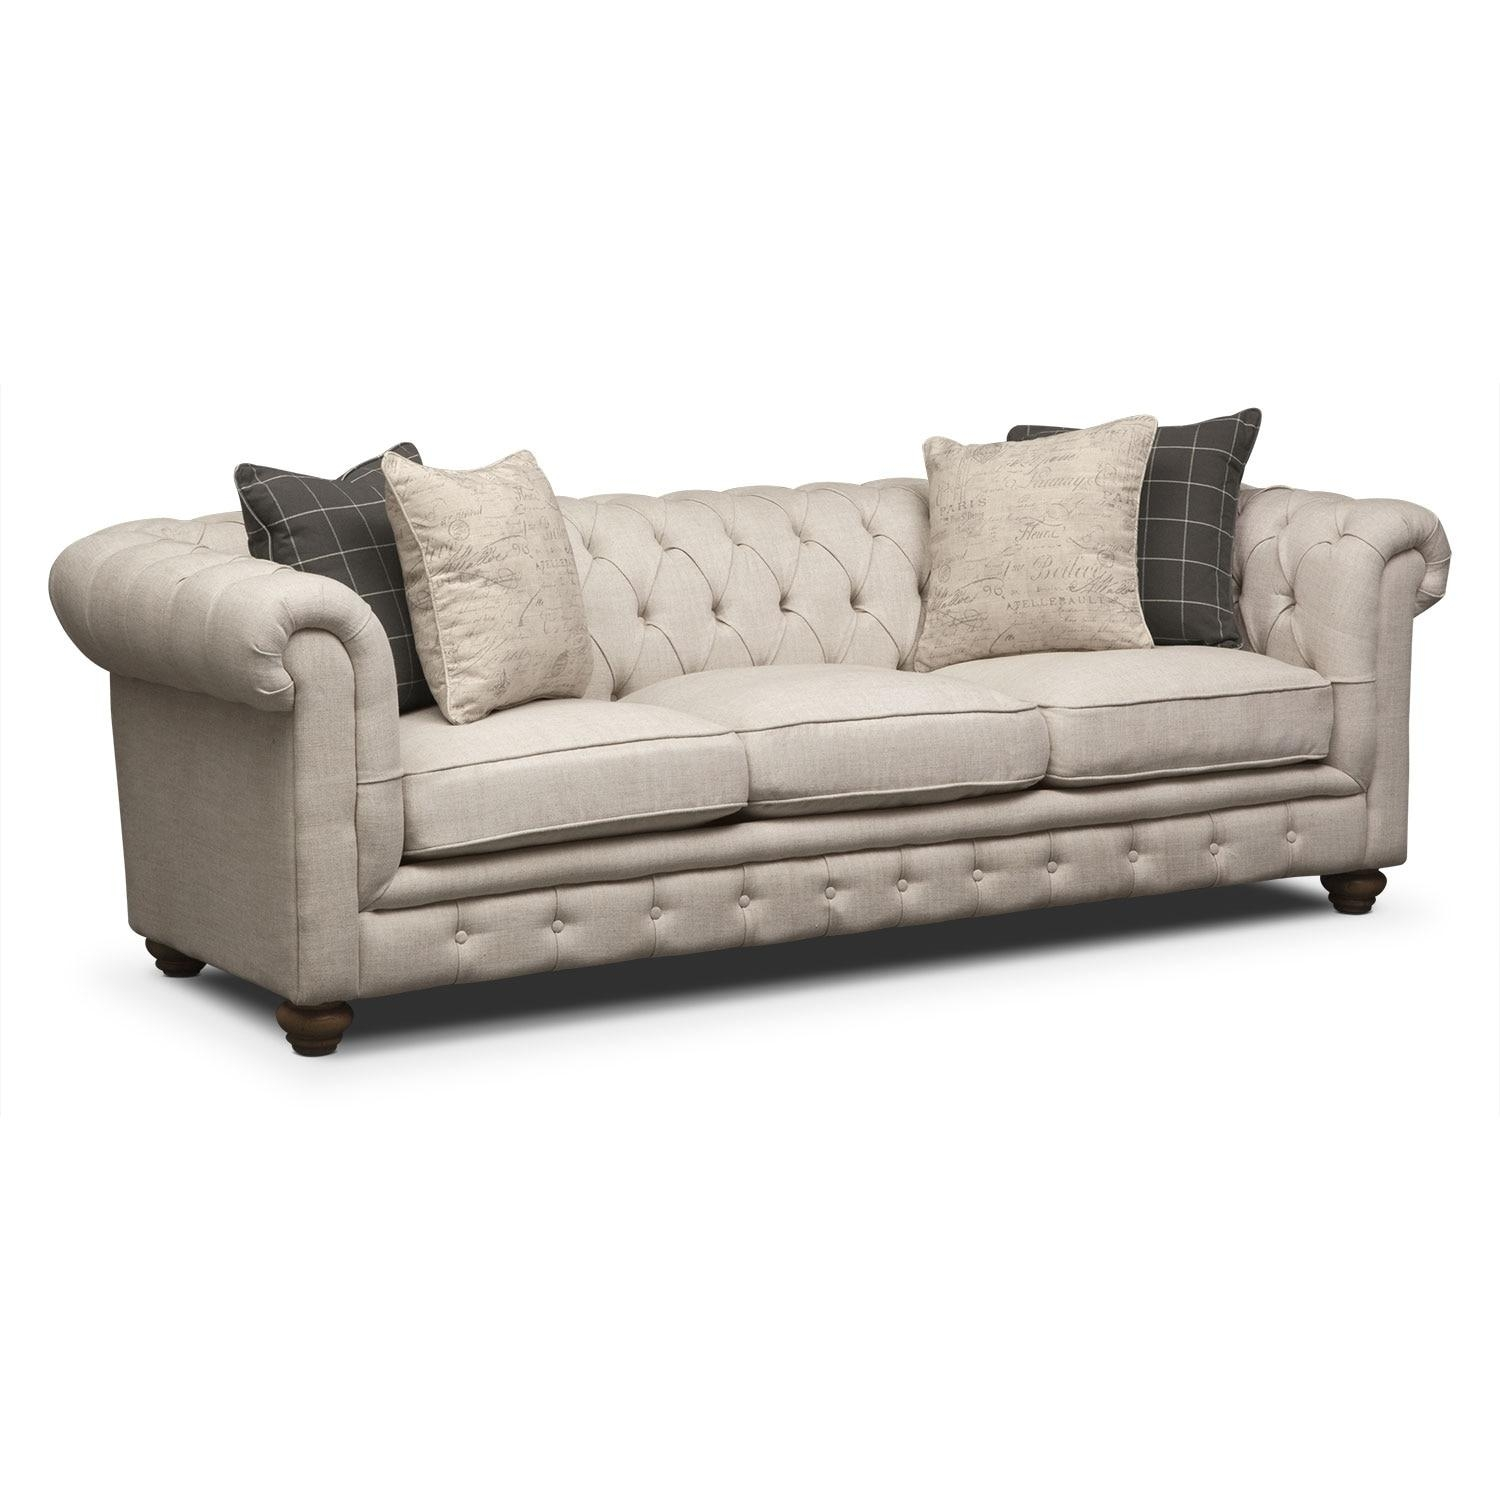 The Madeline Collection – Beige | Value City Furniture Regarding Value City Sofas (View 18 of 20)